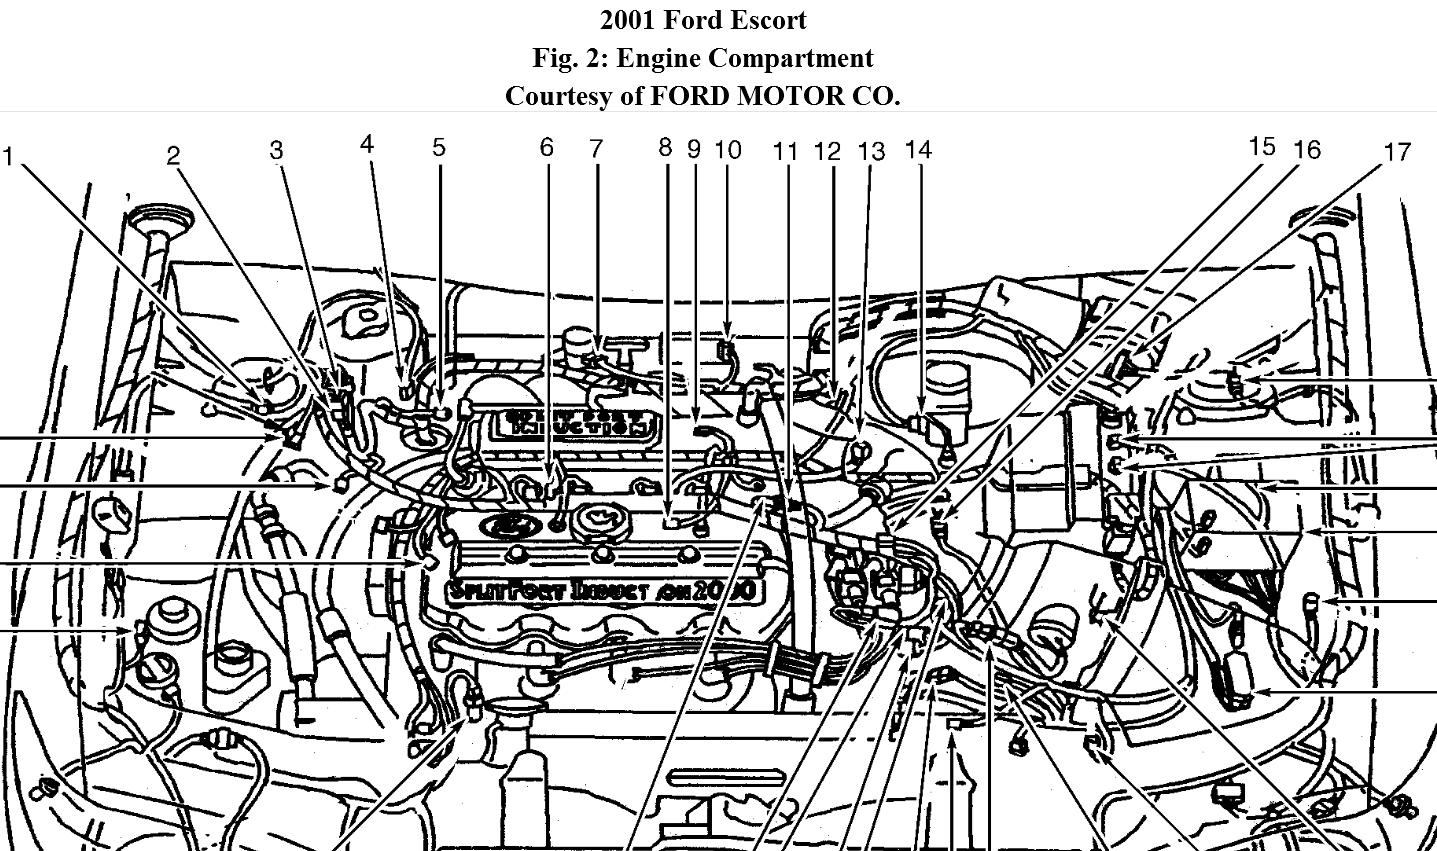 Abs Wiring Diagram Ford Zx2 Auto Electrical 1998 Range Rover For 2001 Escort 34